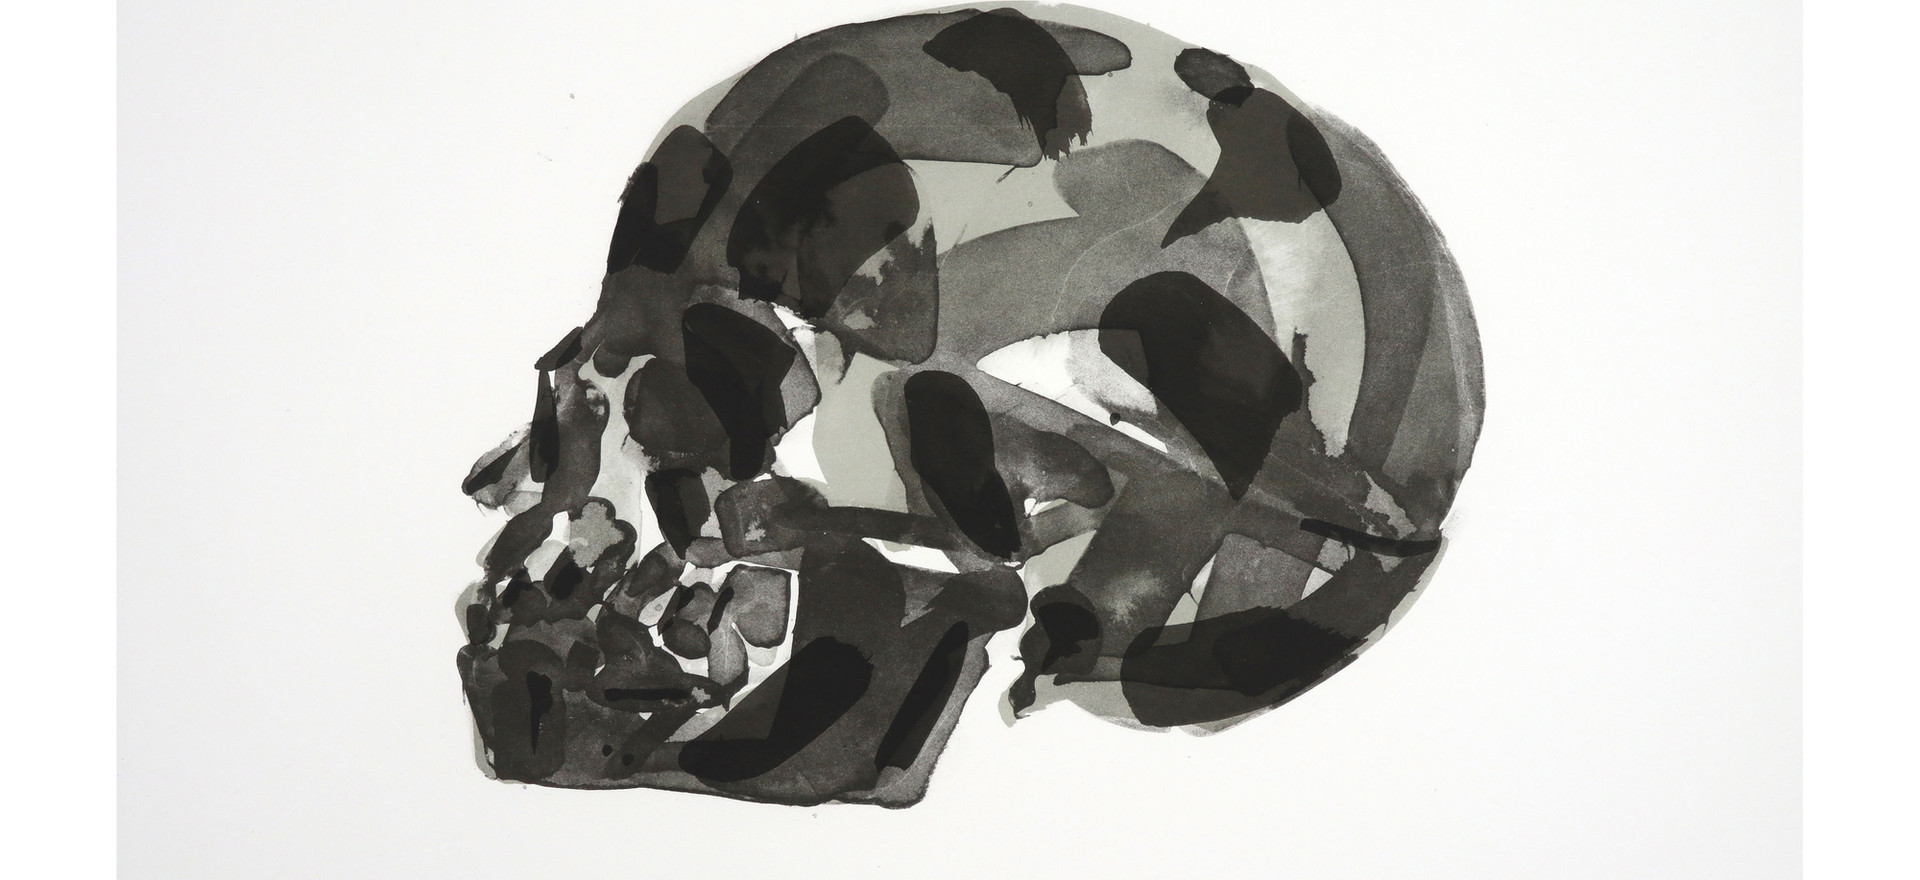 'Articulated (right)', 2017, lithograph, 43.3 x 53 cm